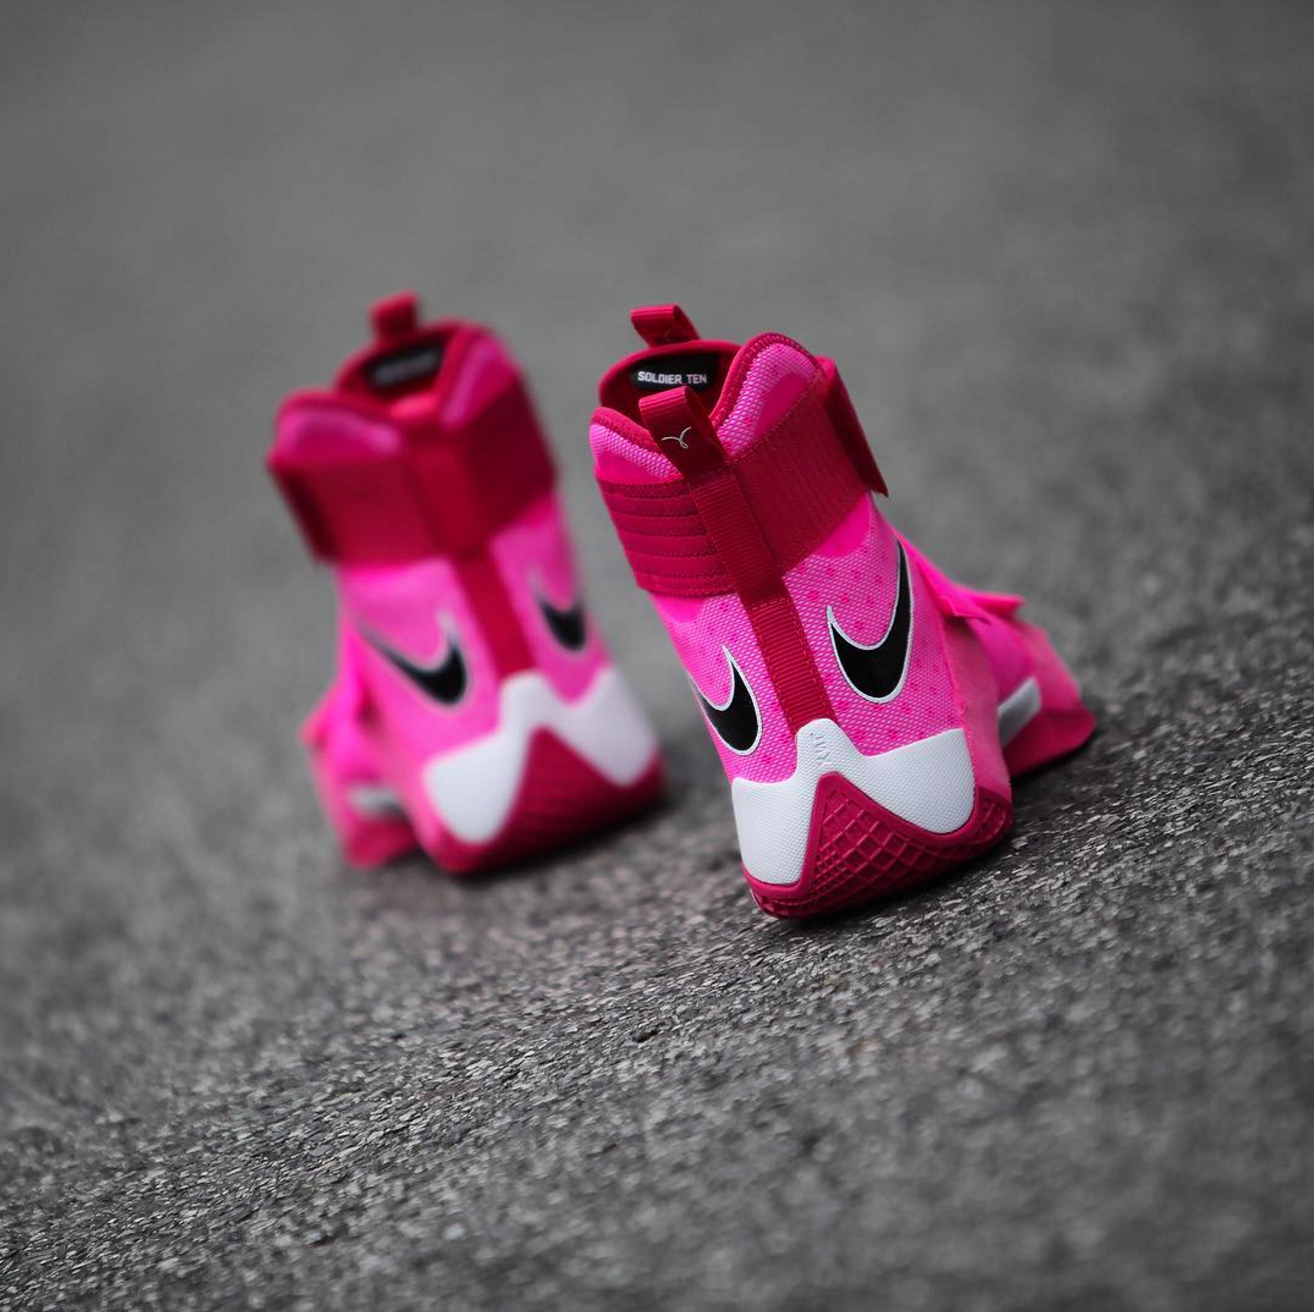 new concept 986b9 50389 A Nike LeBron Soldier 10 for Breast Cancer Awareness ...